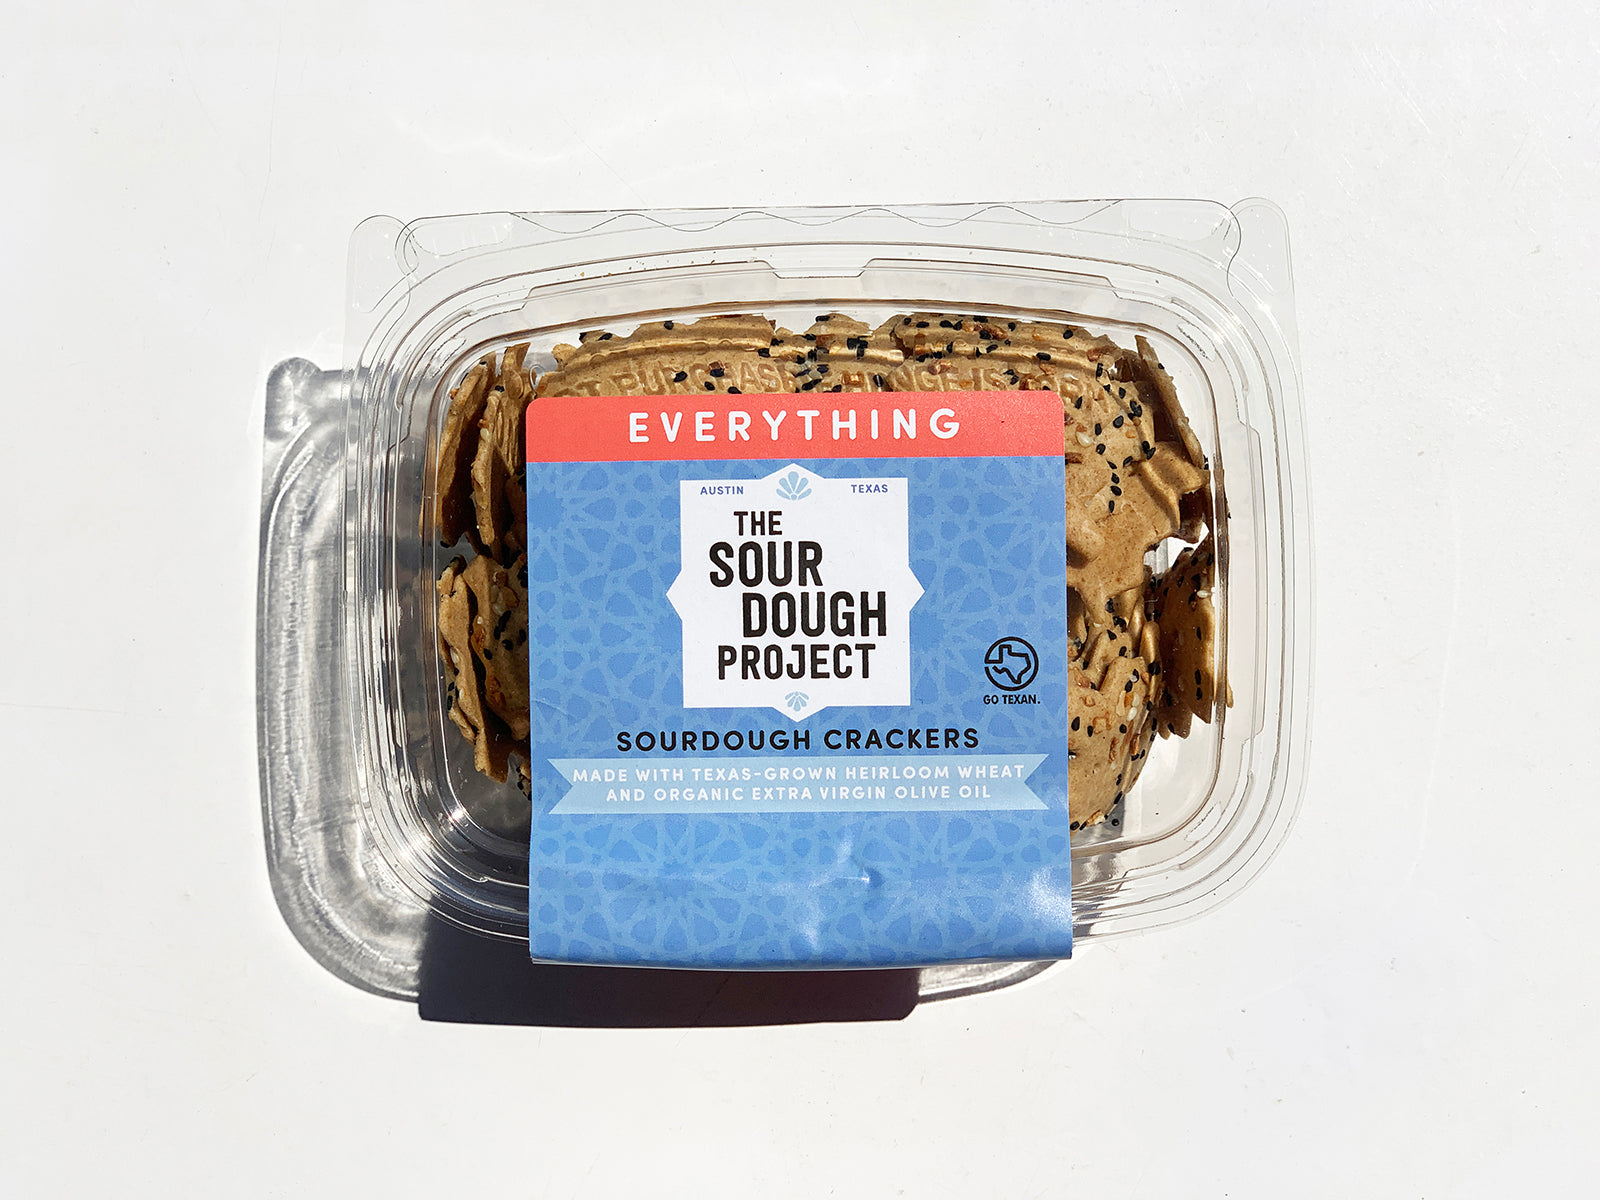 The Sourdough Project crackers in Everything flavor